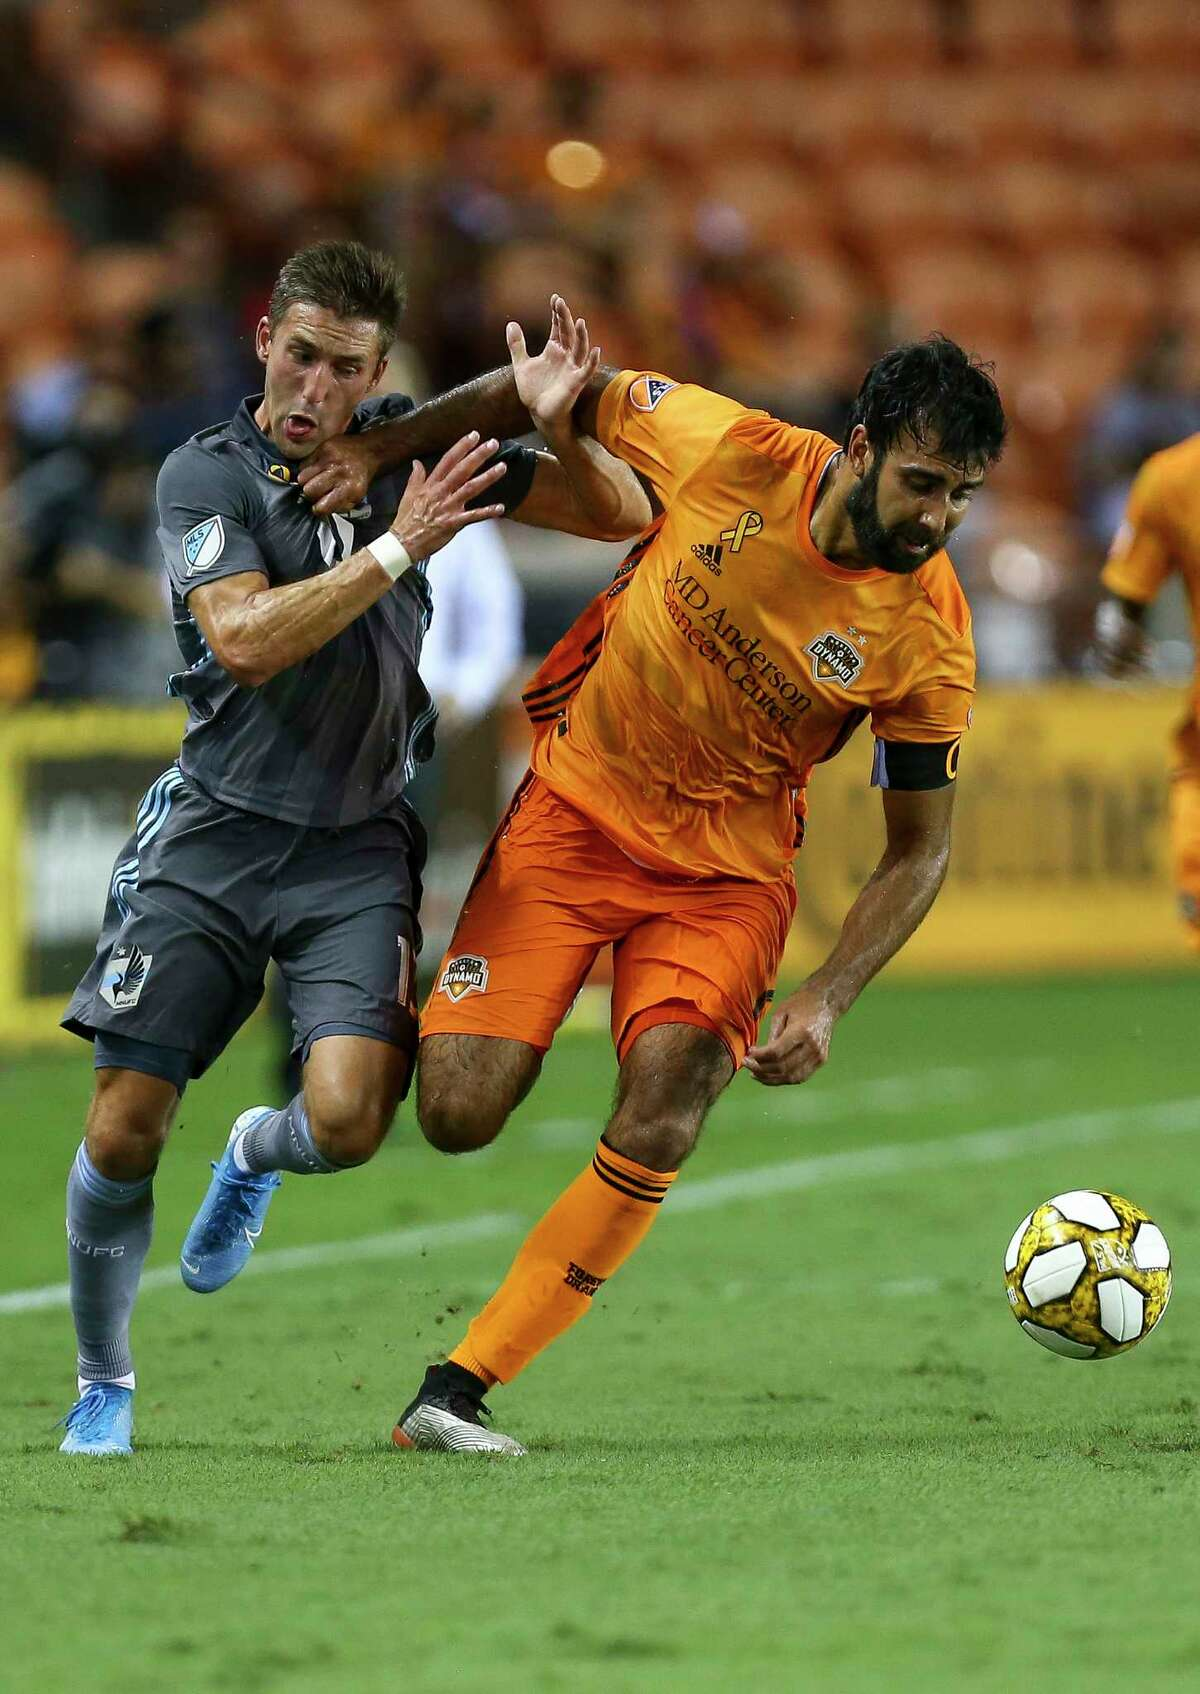 Houston Dynamo defender Kevin Garcia (16) takes the ball away from Minnesota United FC midfielder Ethan Finlay (13) during the first half of an MLS match at BBVA Stadium Wednesday, Sept. 11, 2019, in Houston.